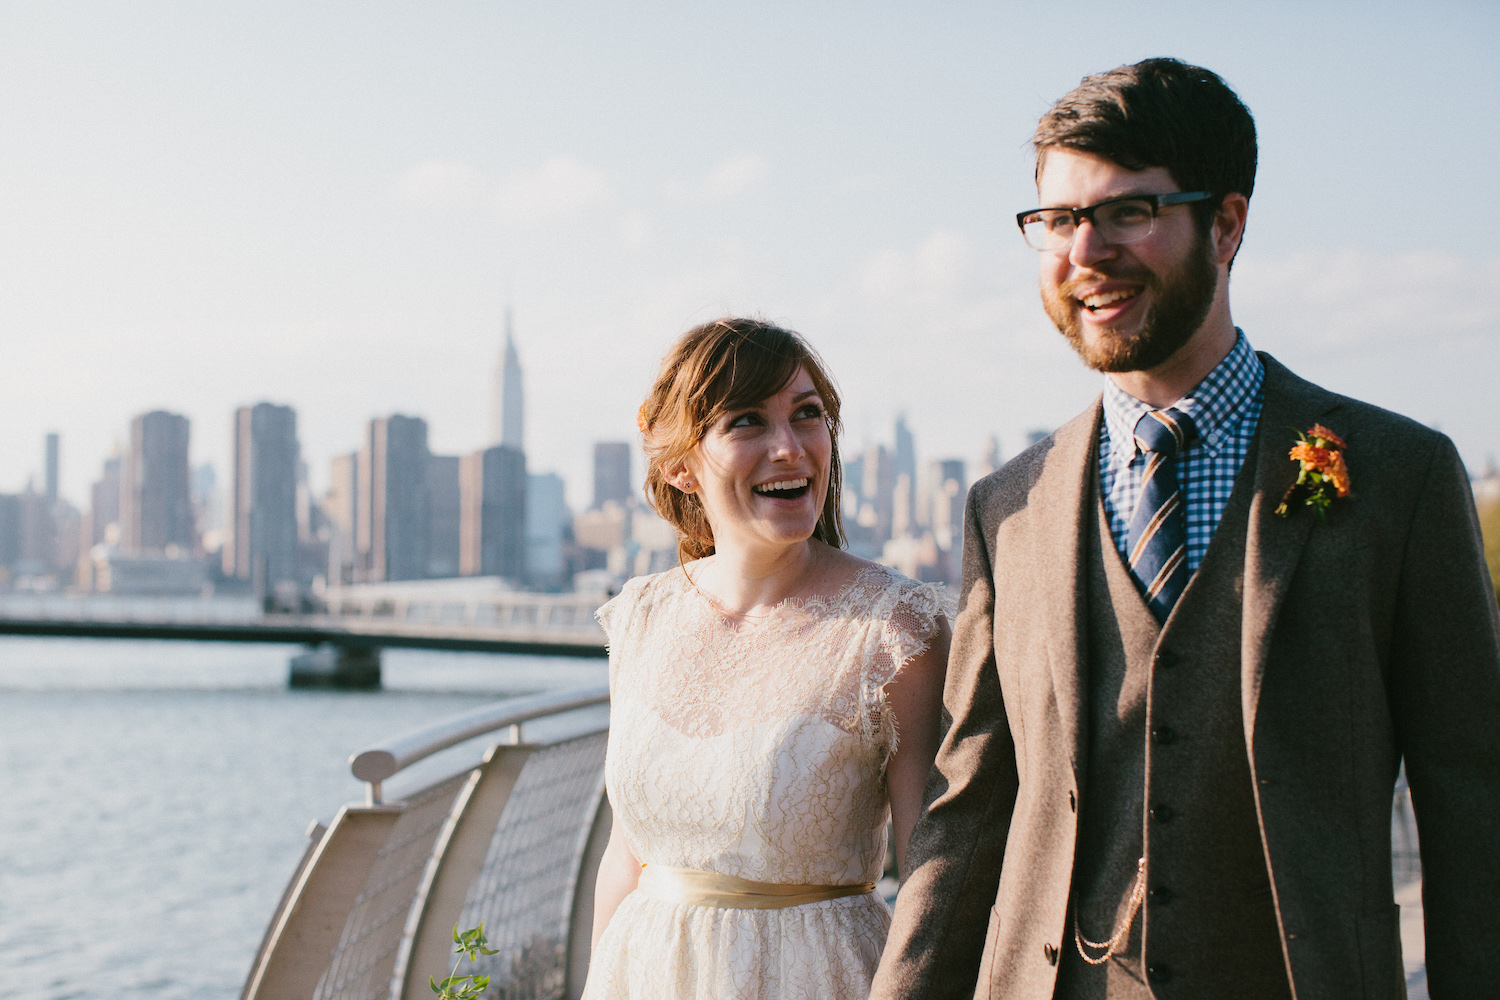 Full Aperture Floral & Corey Torpie Photography  - Brooklyn Wedding - 66.jpeg